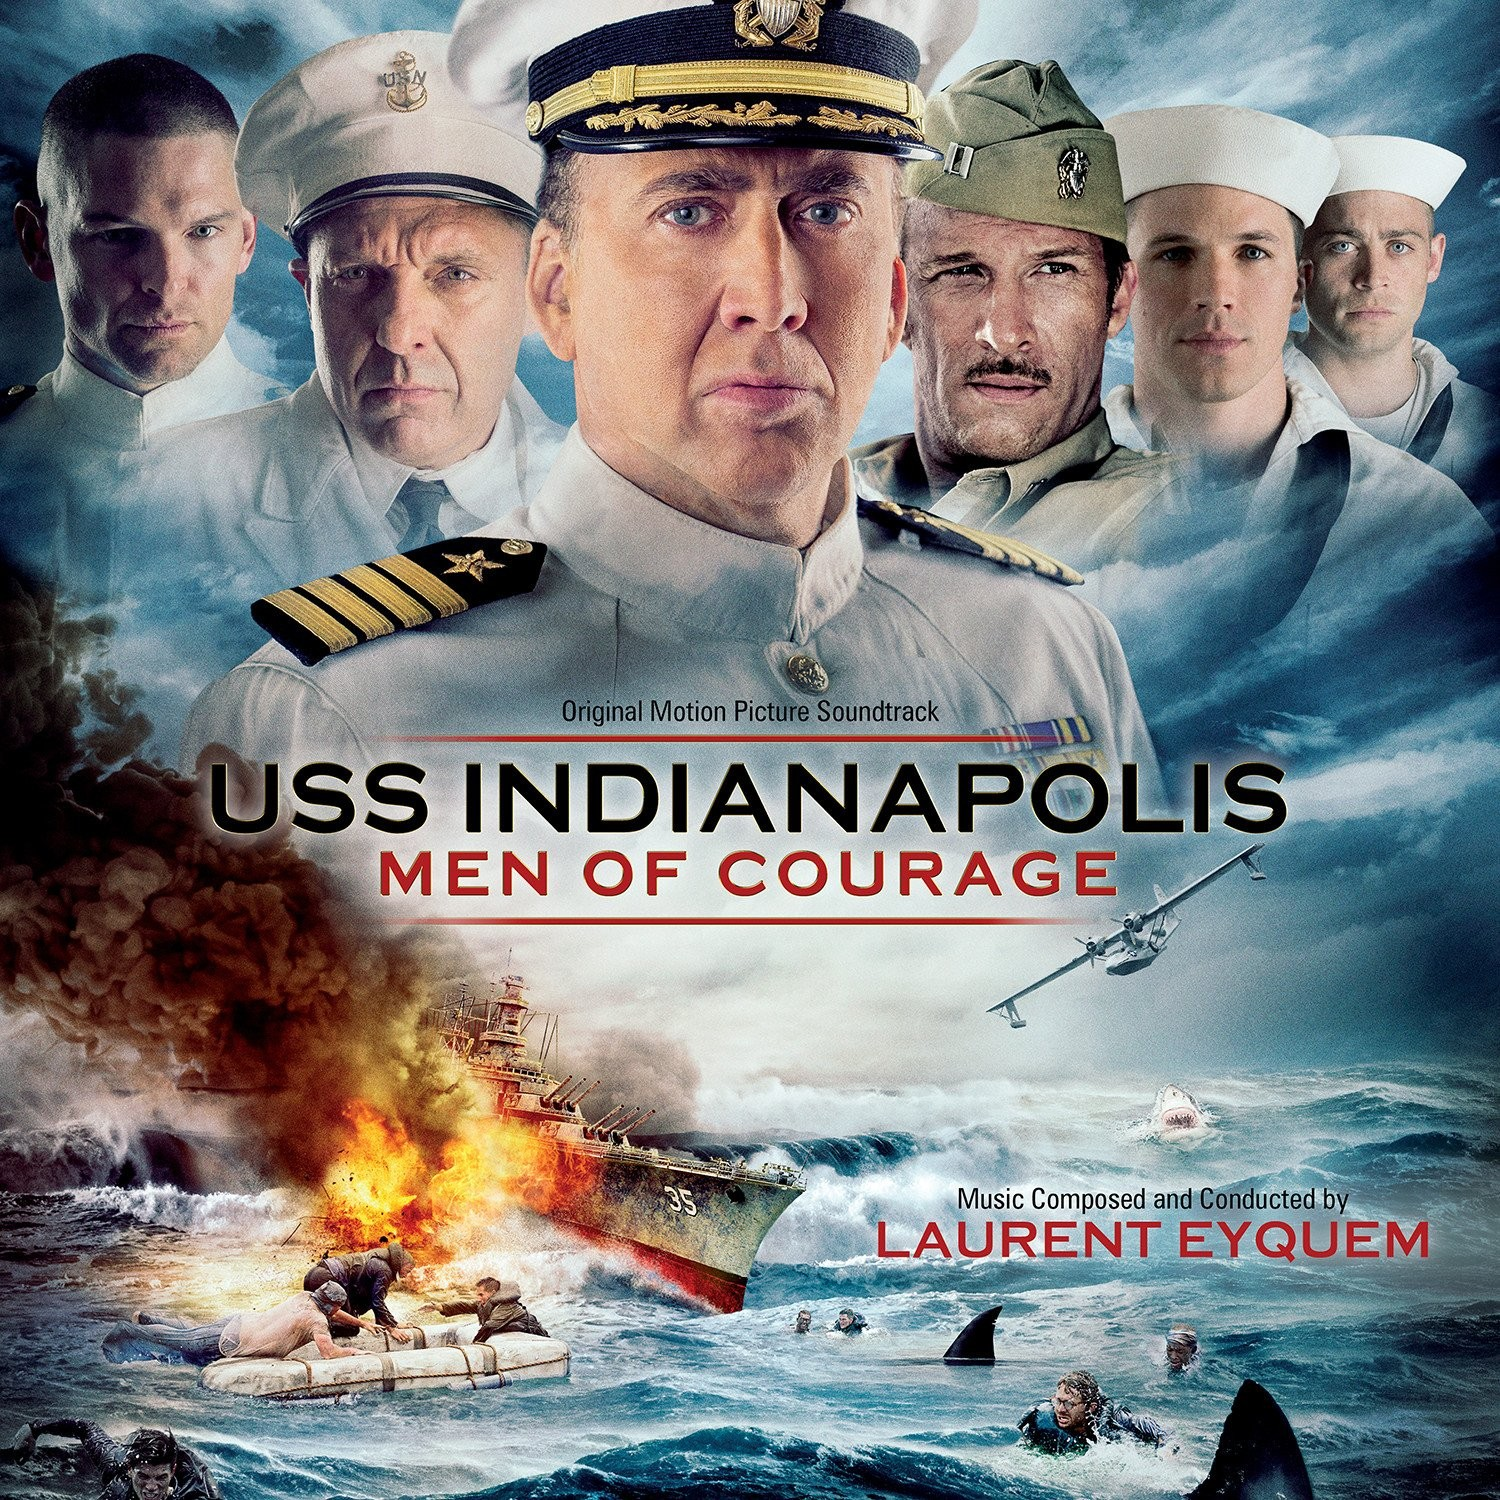 Uss Indianapolis Men Of Courage